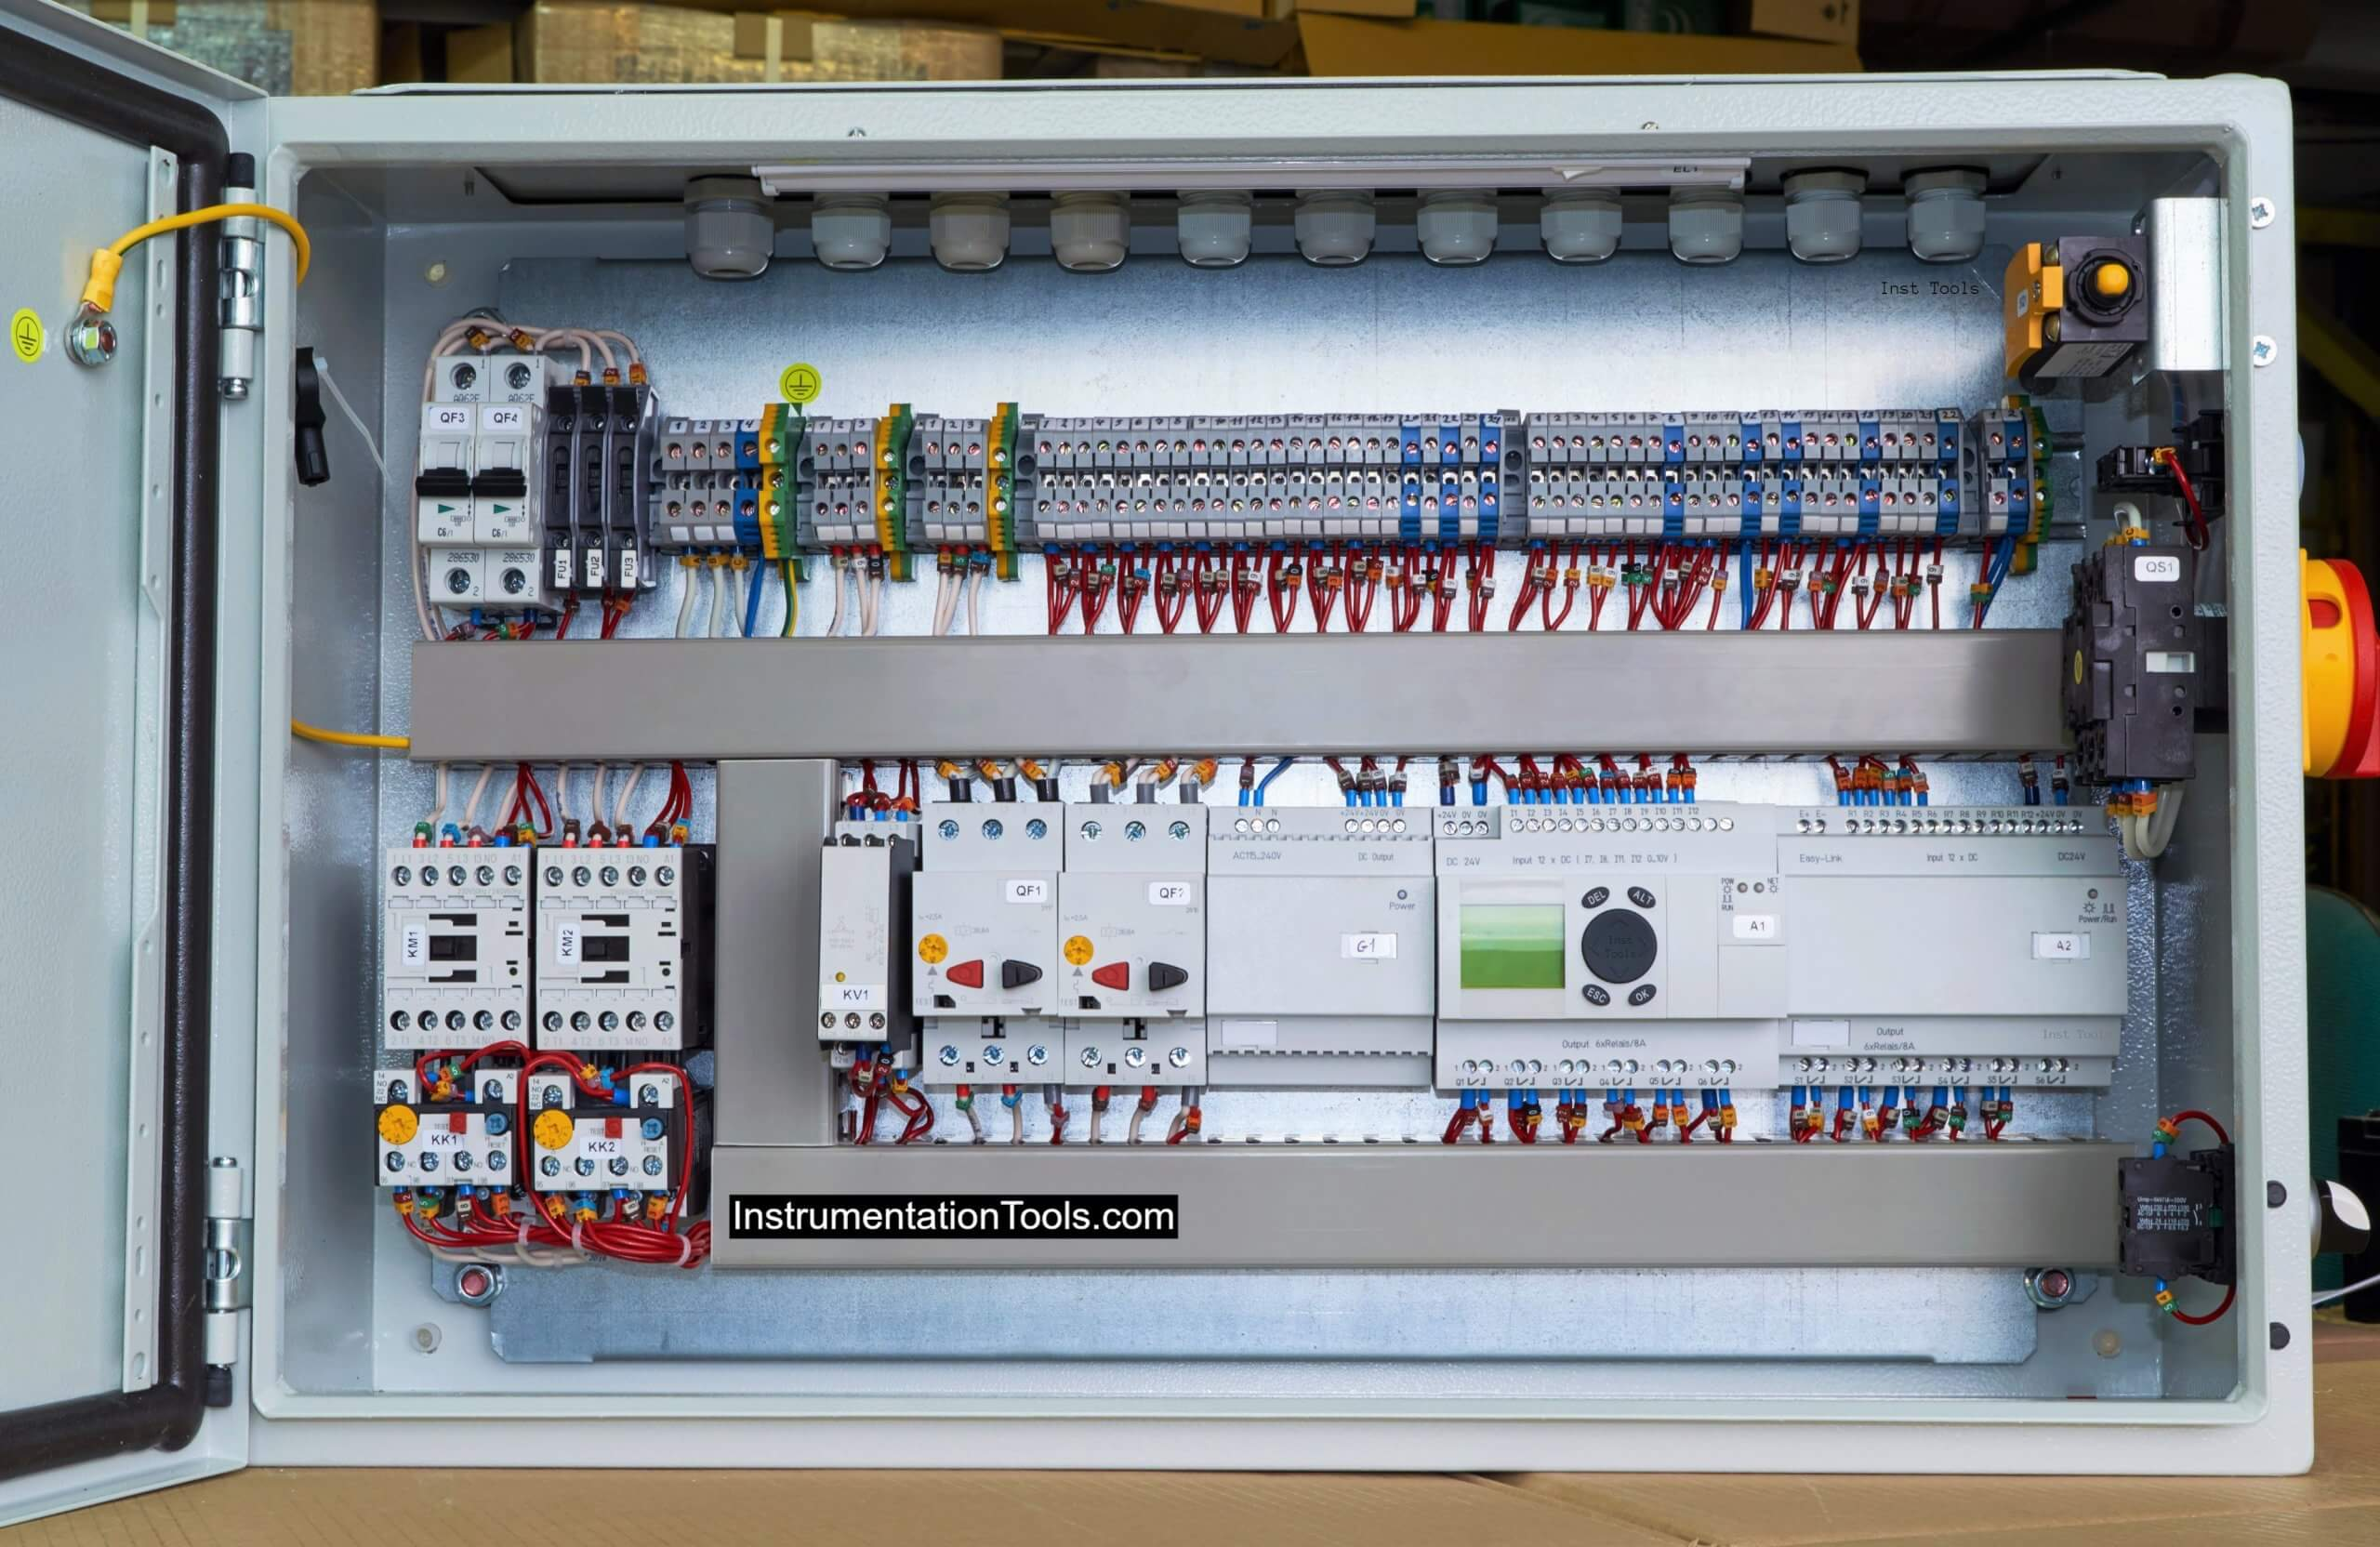 How to Filter Digital and Analog Inputs in a PLC